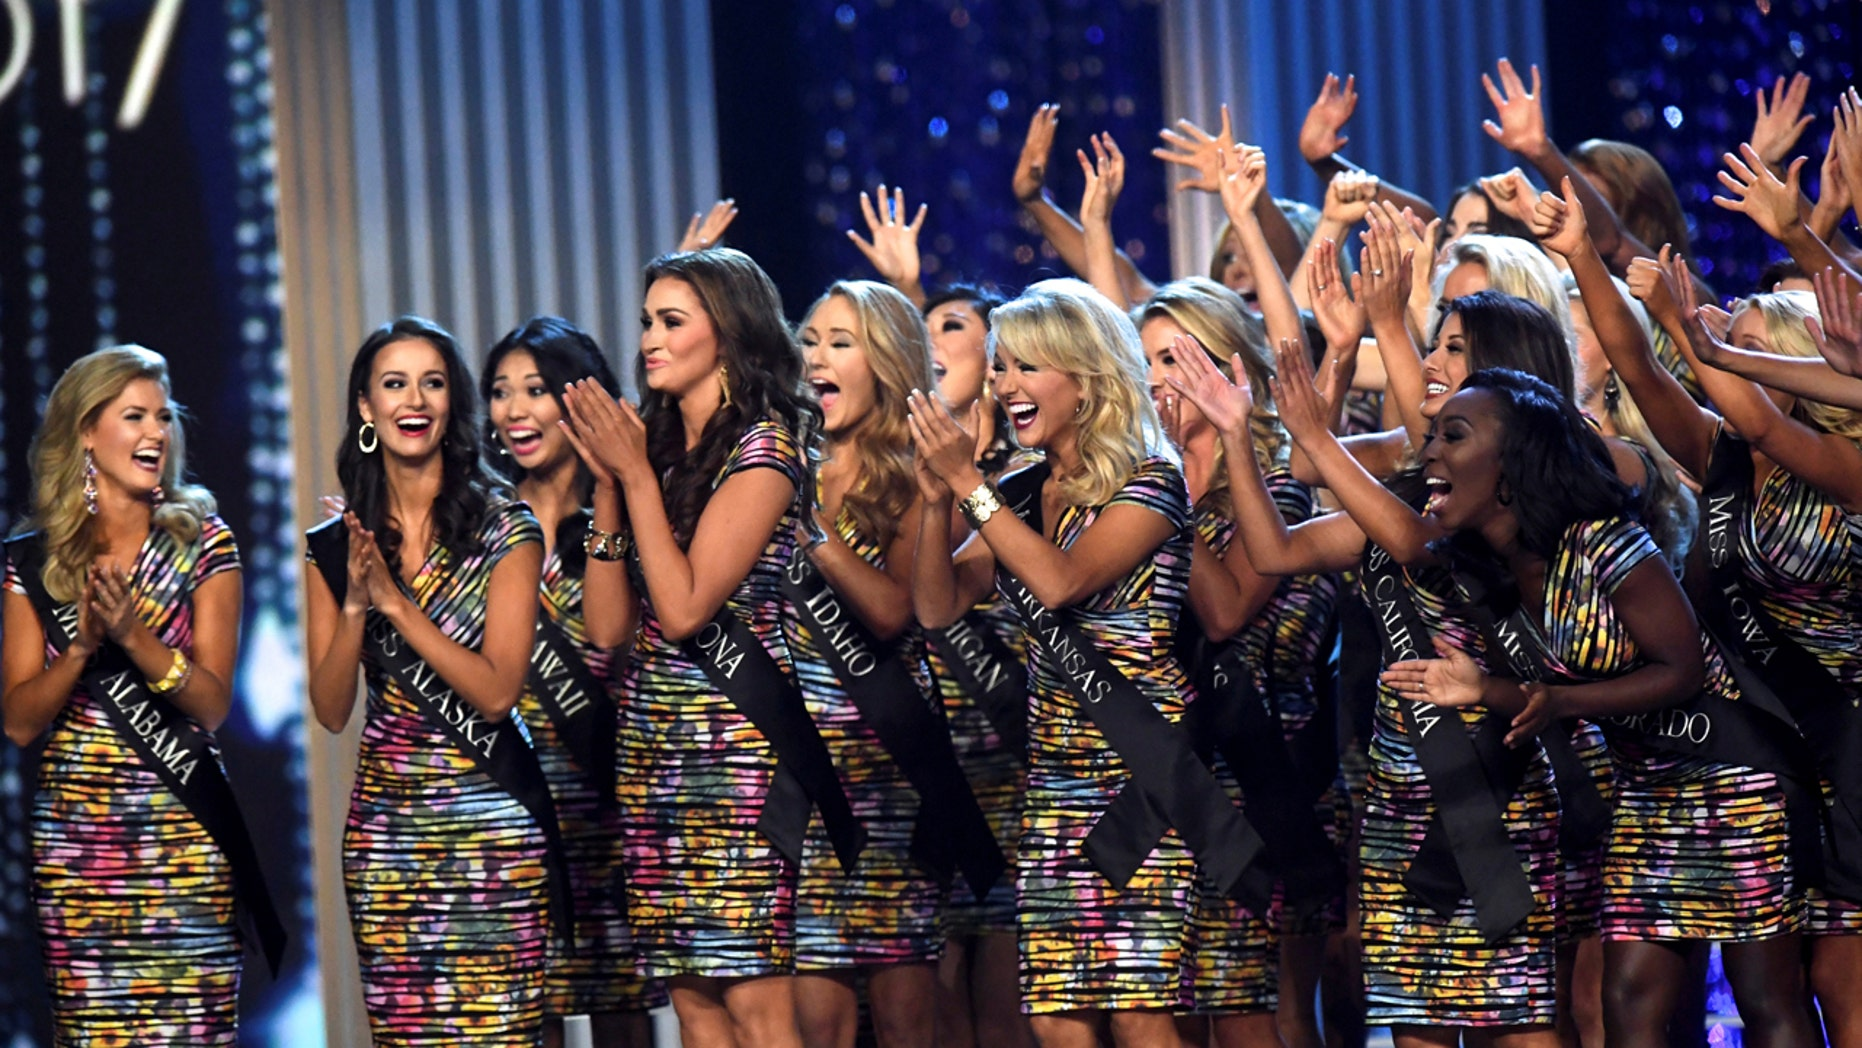 Contestants compete during the 96th Miss America Pageant at Boardwalk Hall in Atlantic City, N.J., Sept. 11, 2016.